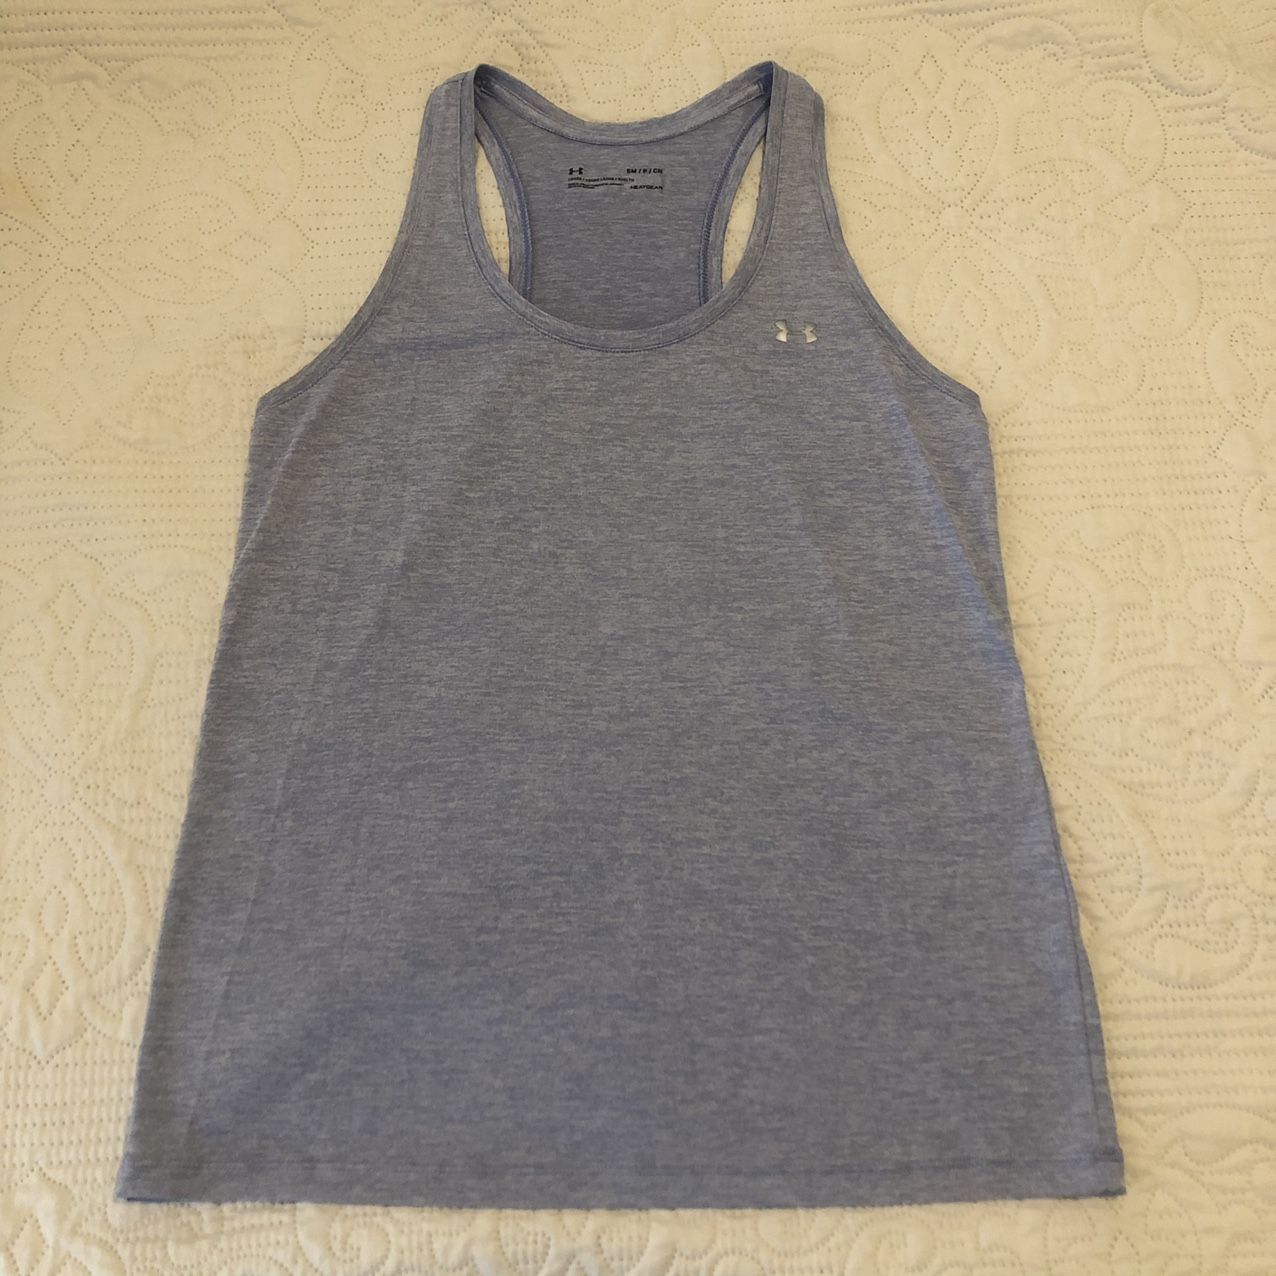 Product Image 1 - #underarmour size Small, blue loose